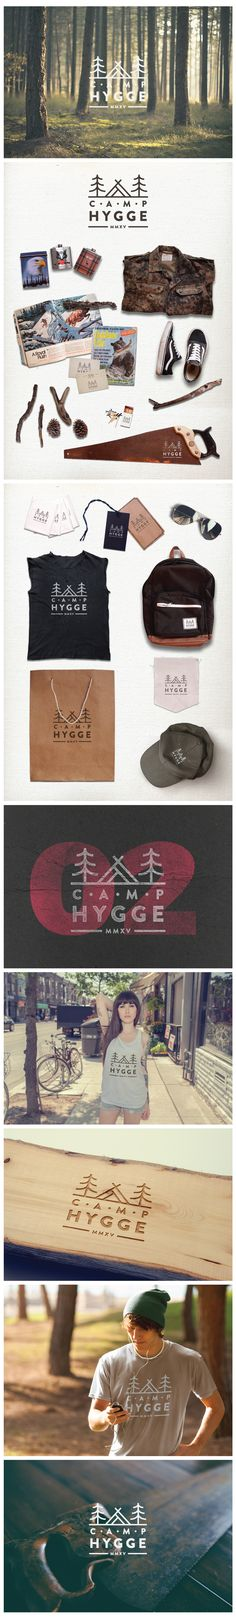 Logo design and branding concept for Camp Hygge by CogitoDesigns.